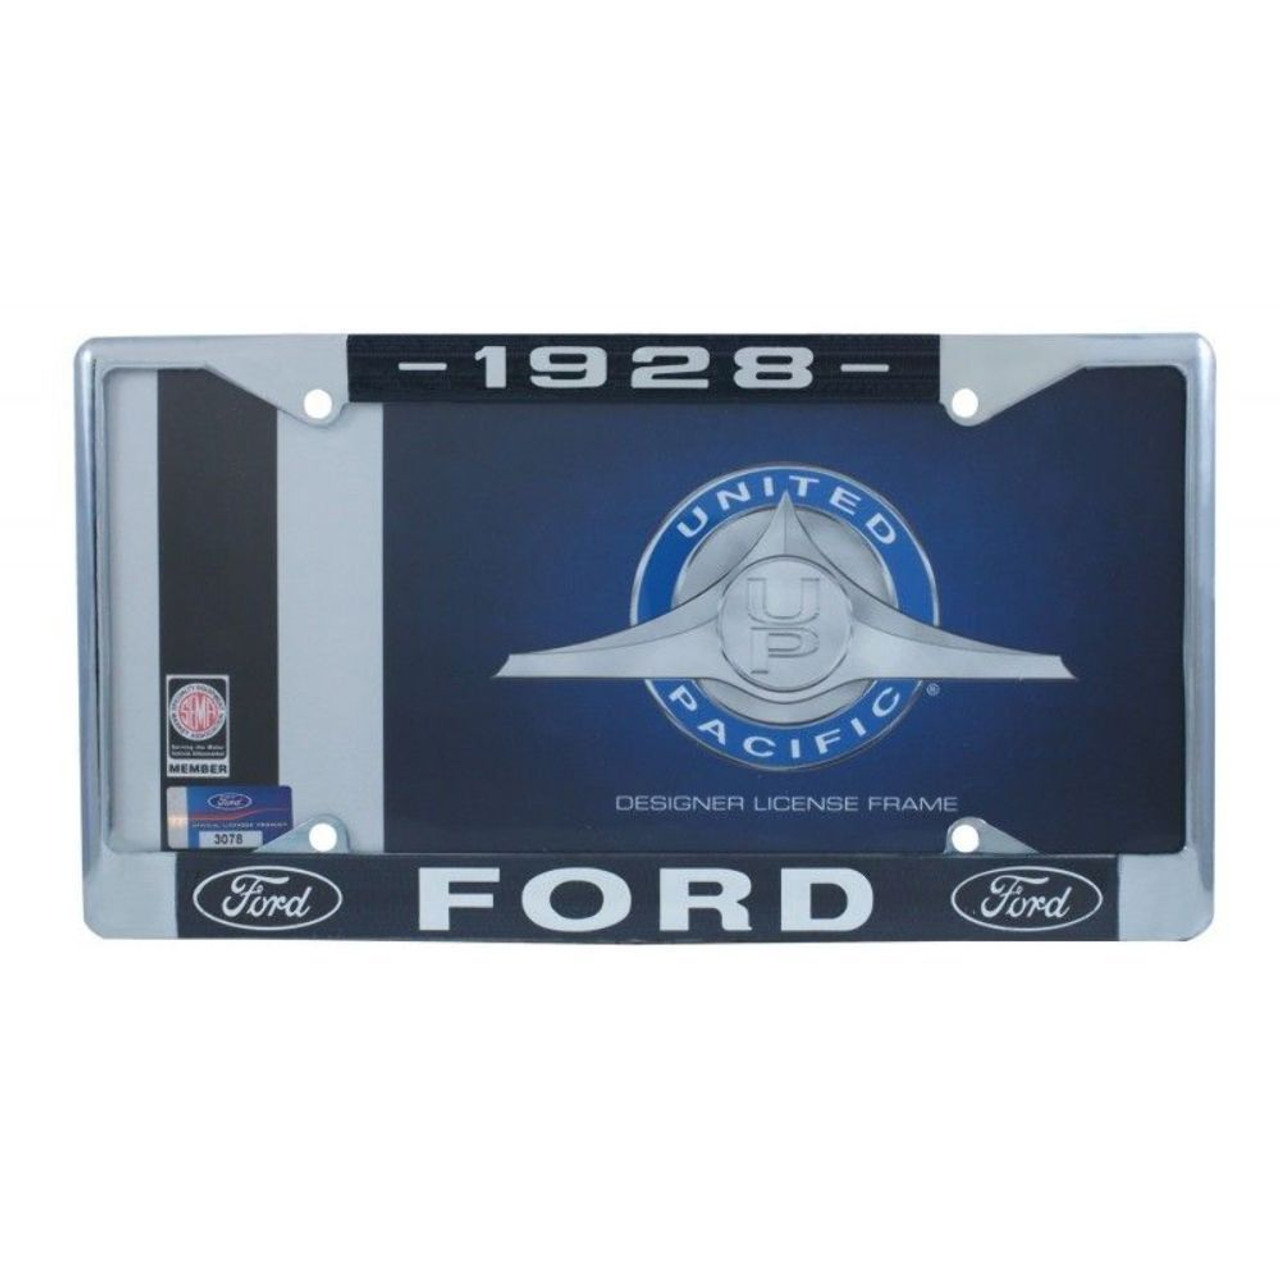 1928 Ford License Plate Frame Chrome Finish with Blue and White Script, Set of 2